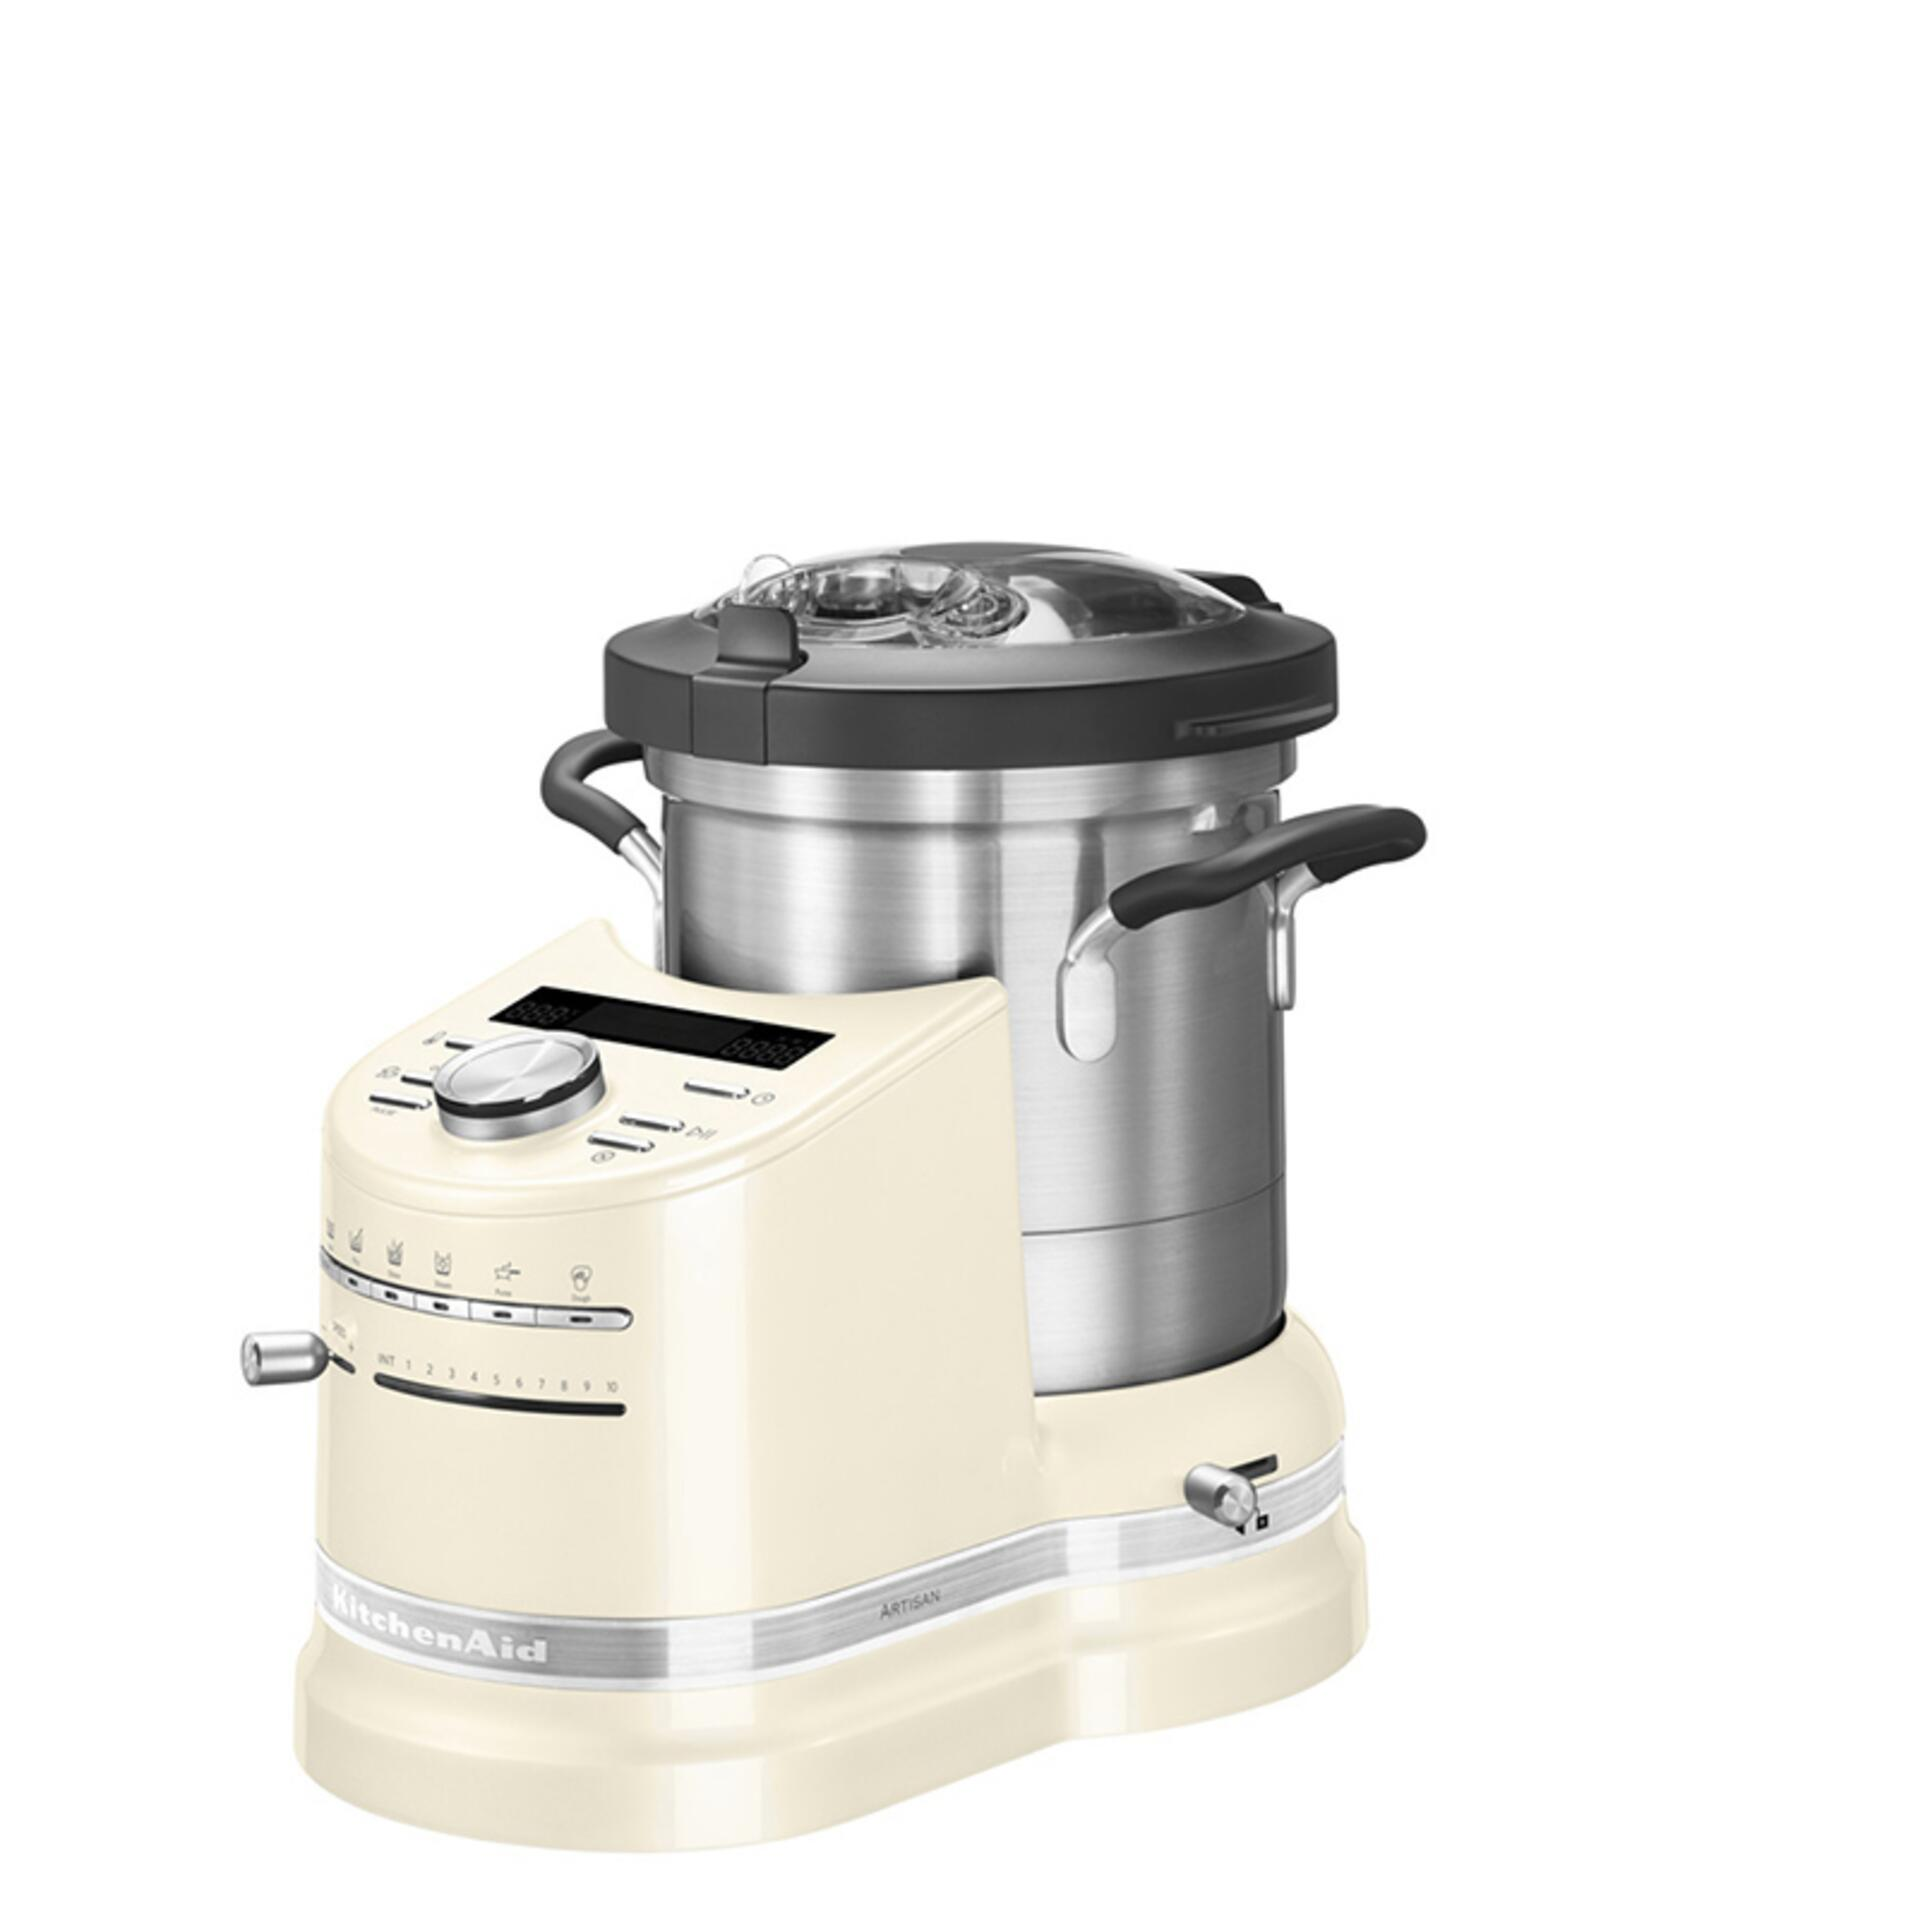 KitchenAid Artisan Cook Processor 5KCF0104EAC/4 Crème